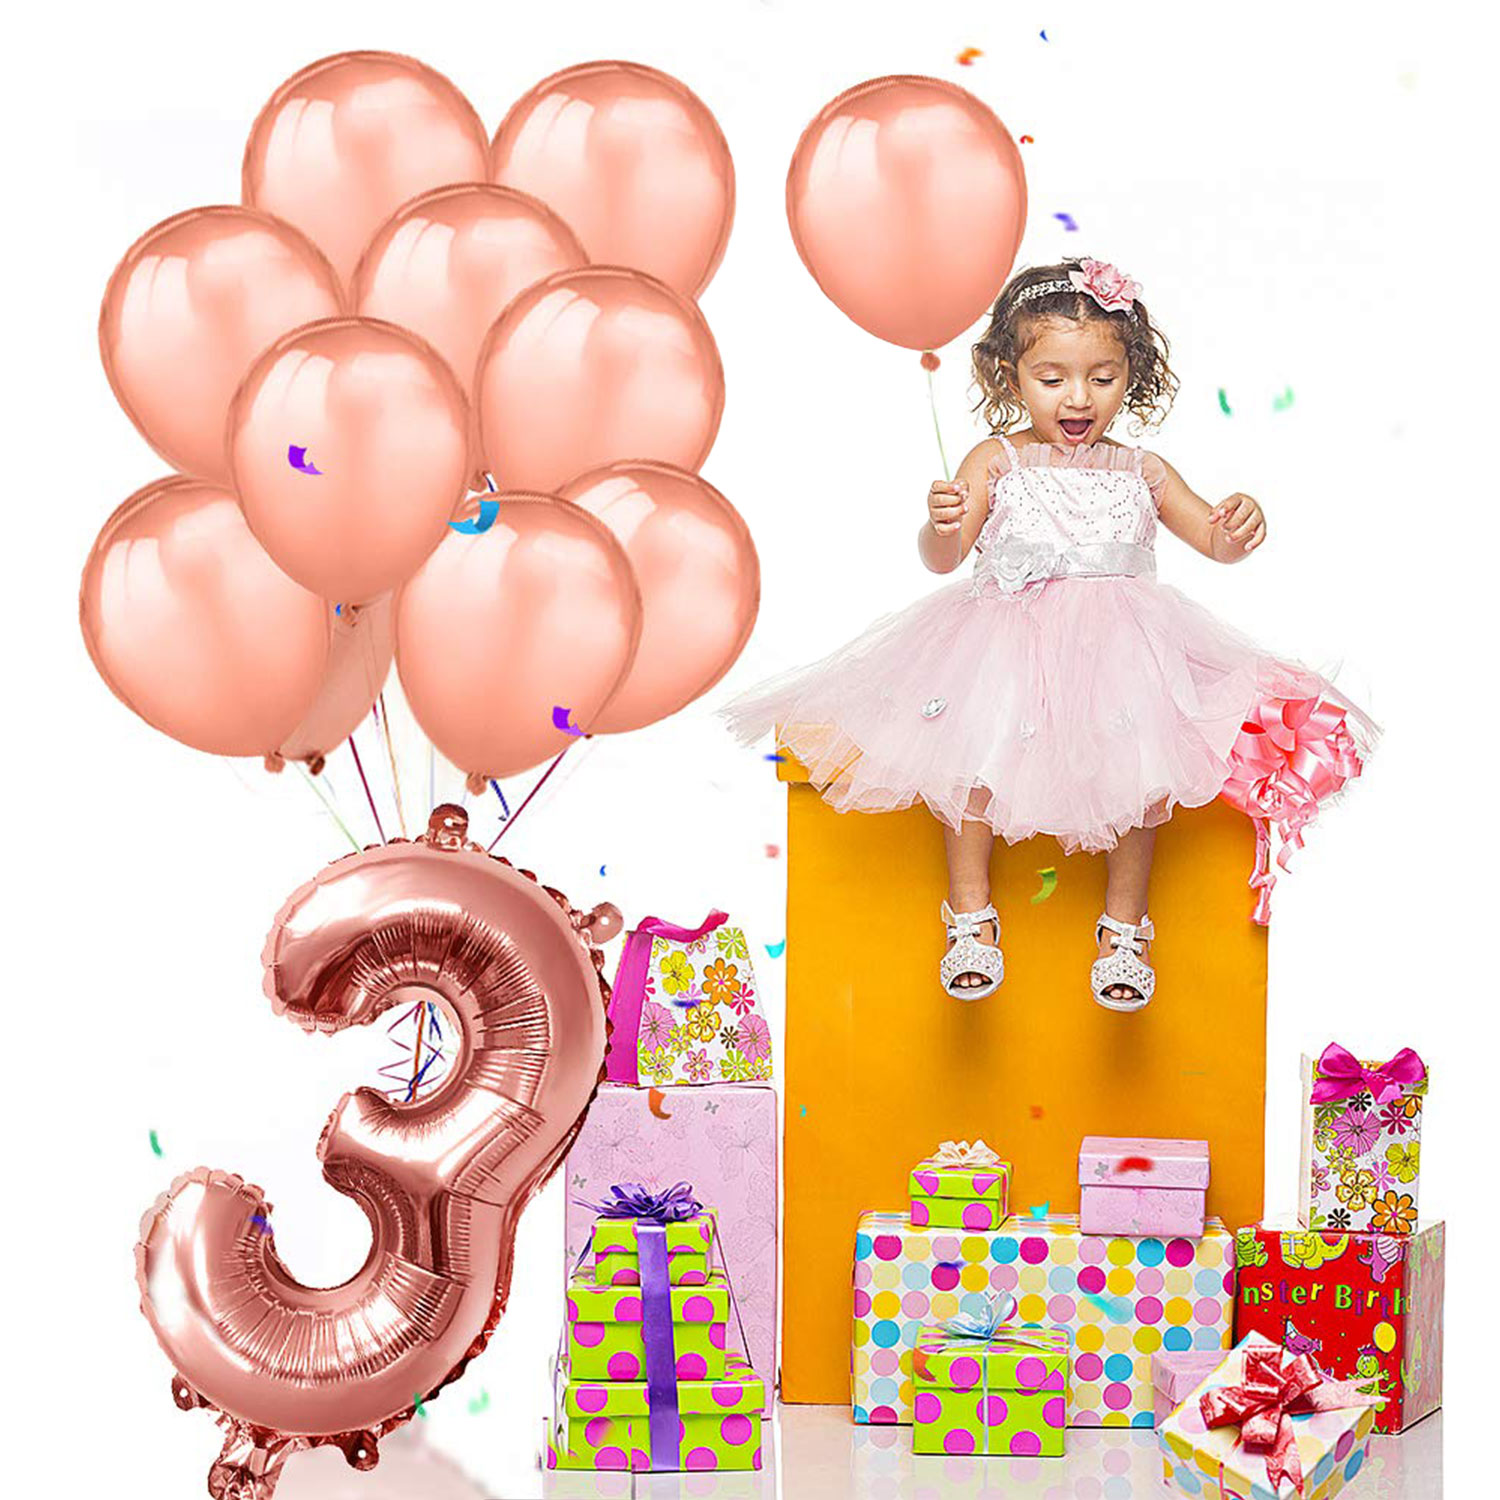 ZLJQ Rose Gold Number 3 Birthday Balloons Foil Helium 3rd Years Old Decoration Party Supplies Kid In Ballons Accessories From